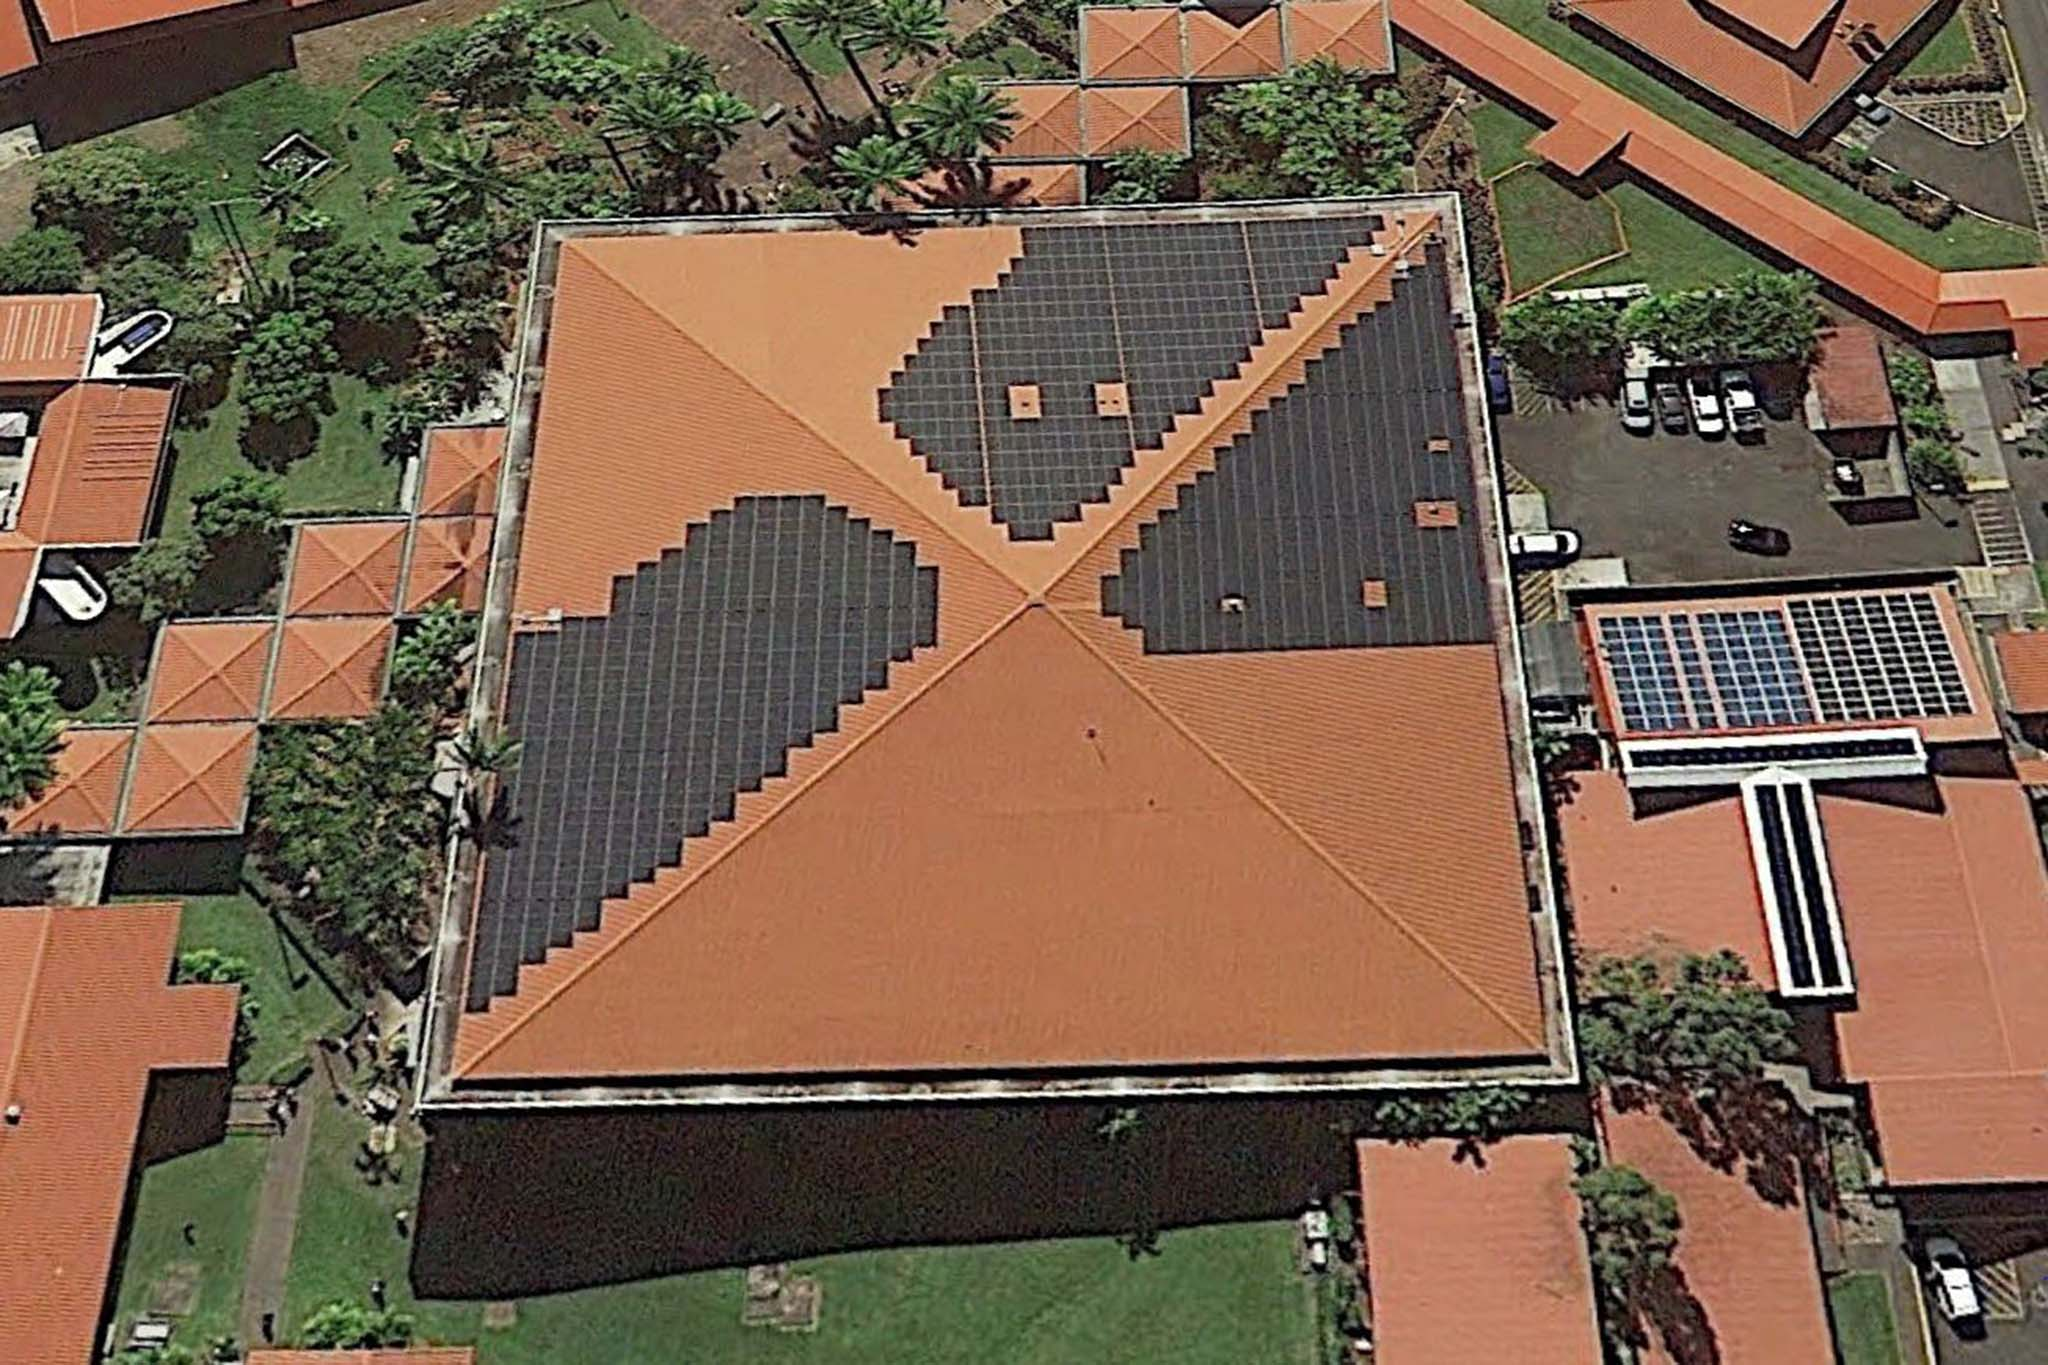 Photo Of University Of Hawaii At Hilo Mookini Library Photo Voltaic System